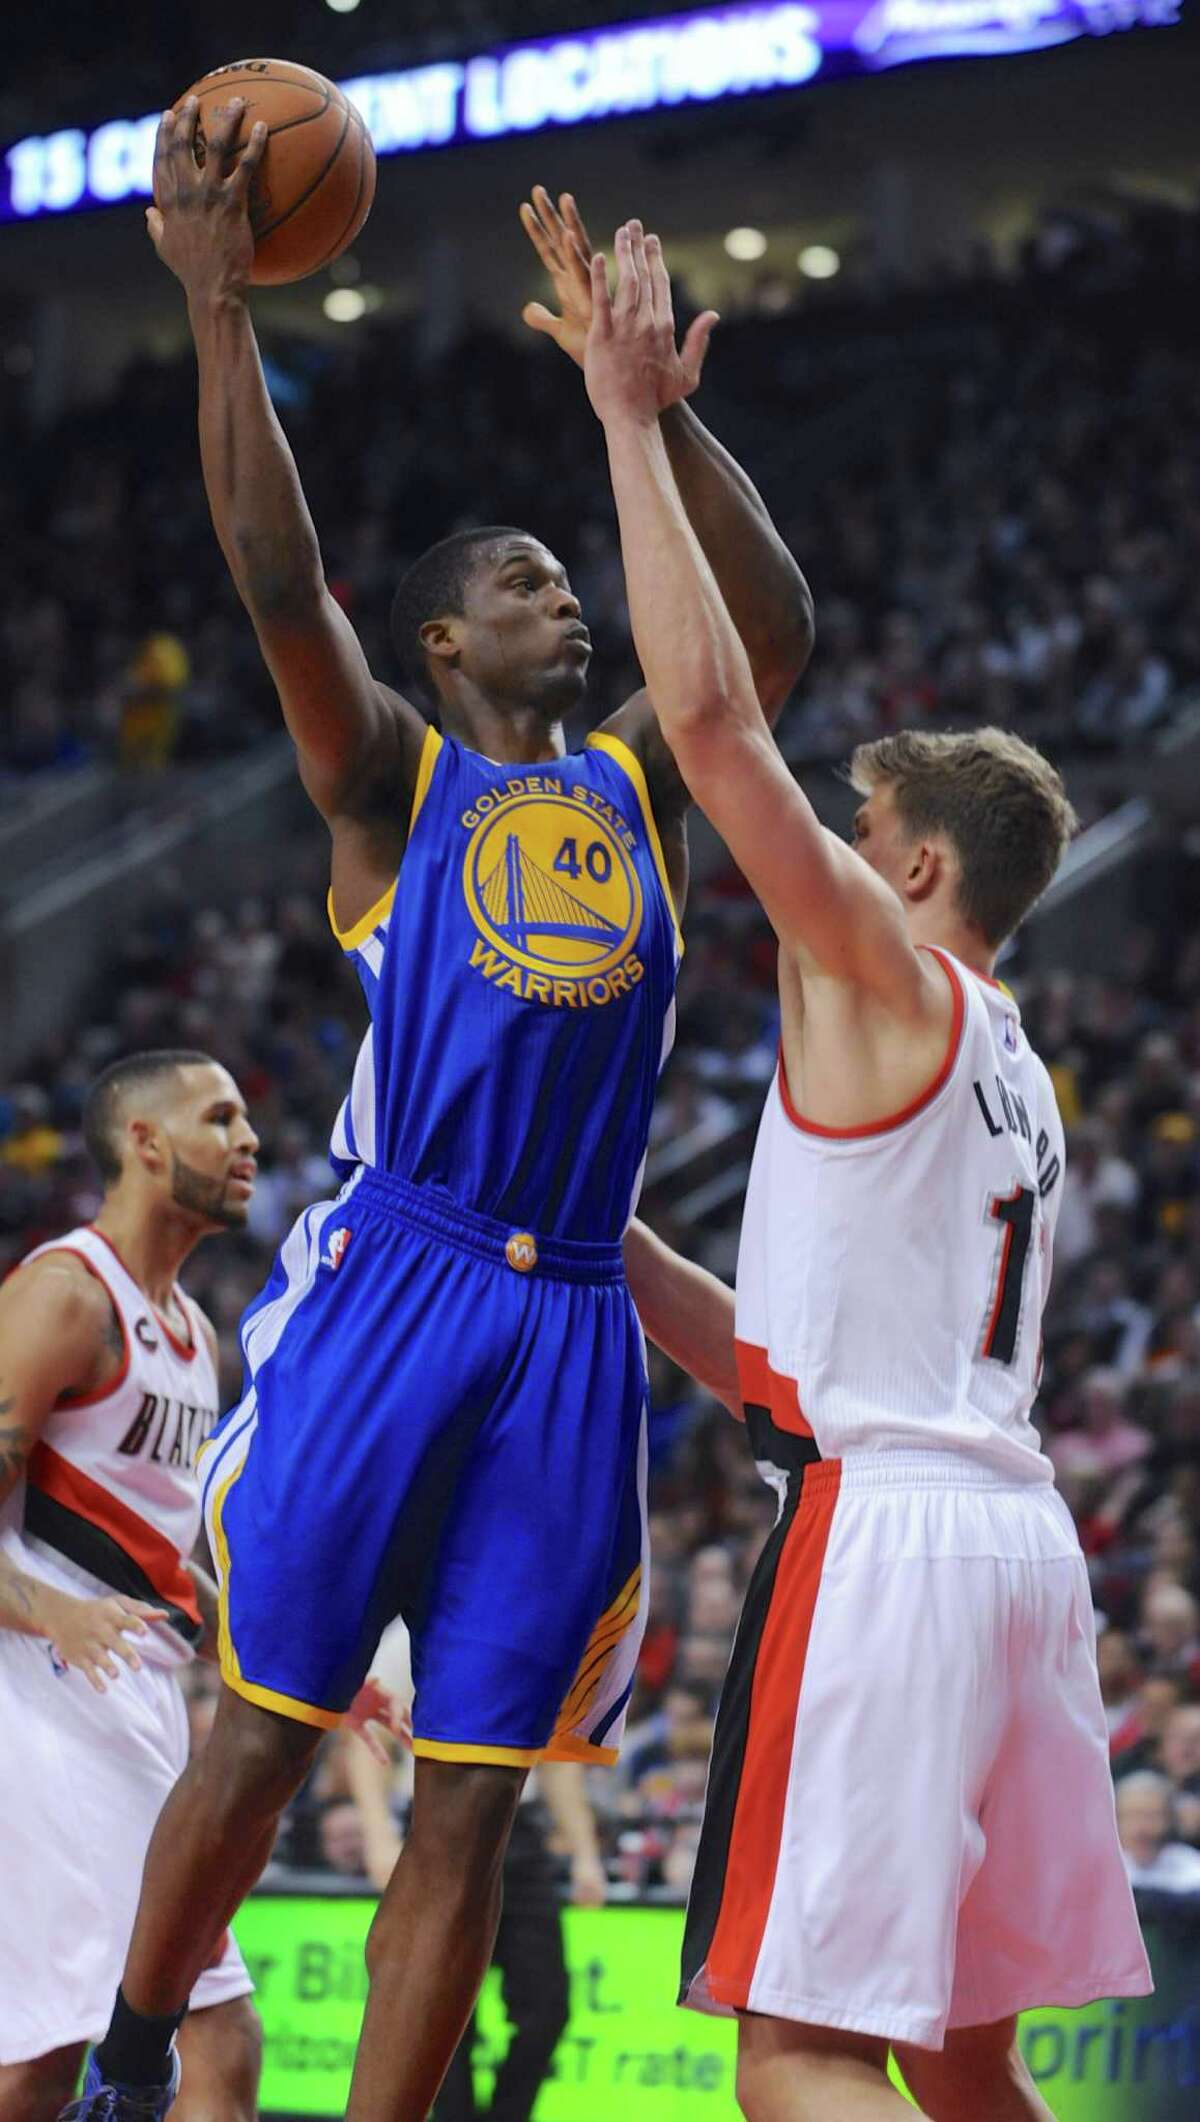 Golden State Warriors' Harrison Barnes (40) shoots against Portland Trail Blazers' Meyers Leonard (11) during the first half of an NBA basketball game in Portland, Ore., Tuesday, March 24, 2015. (AP Photo/Greg Wahl-Stephens)